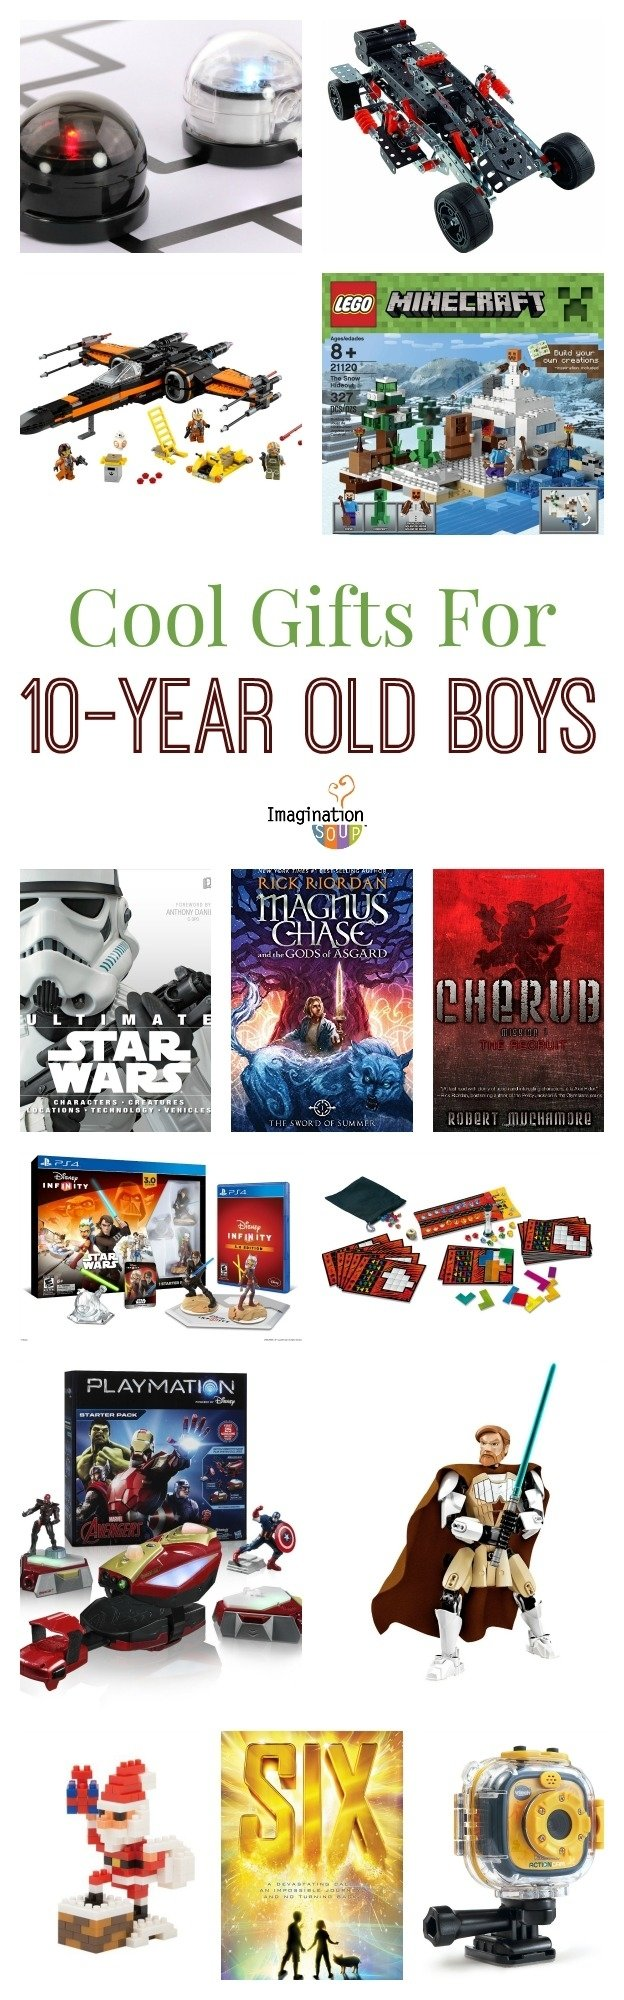 10 Stylish Gift Ideas For 10 Yr Old Boy gifts for 10 year old boys imagination soup 2 2020